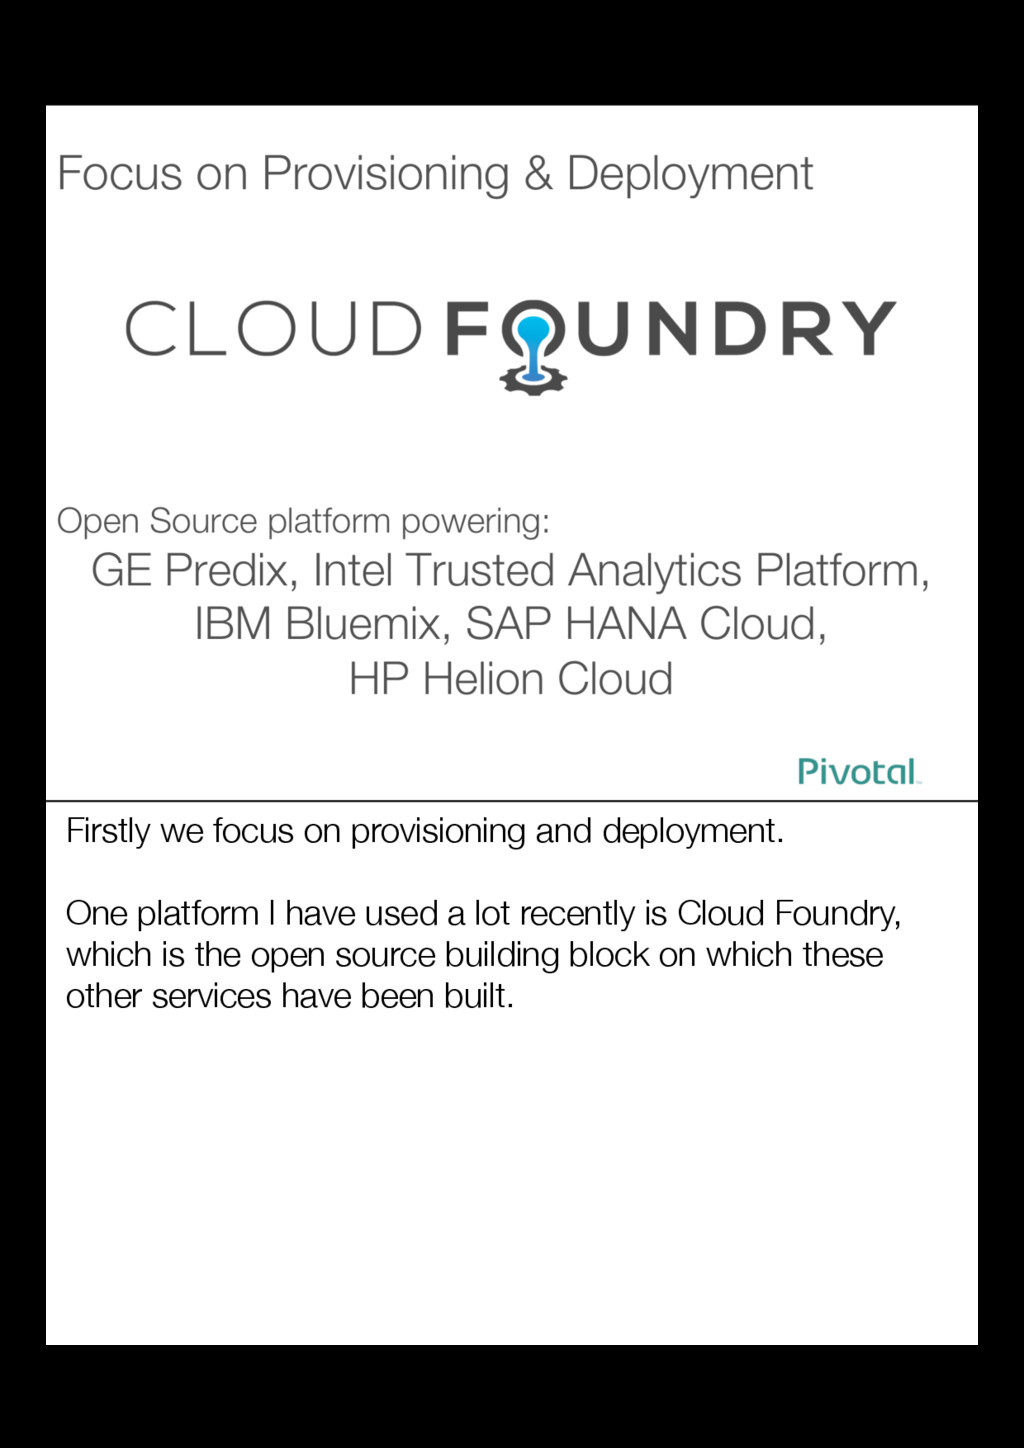 Firstly we focus on provisioning and deployment...